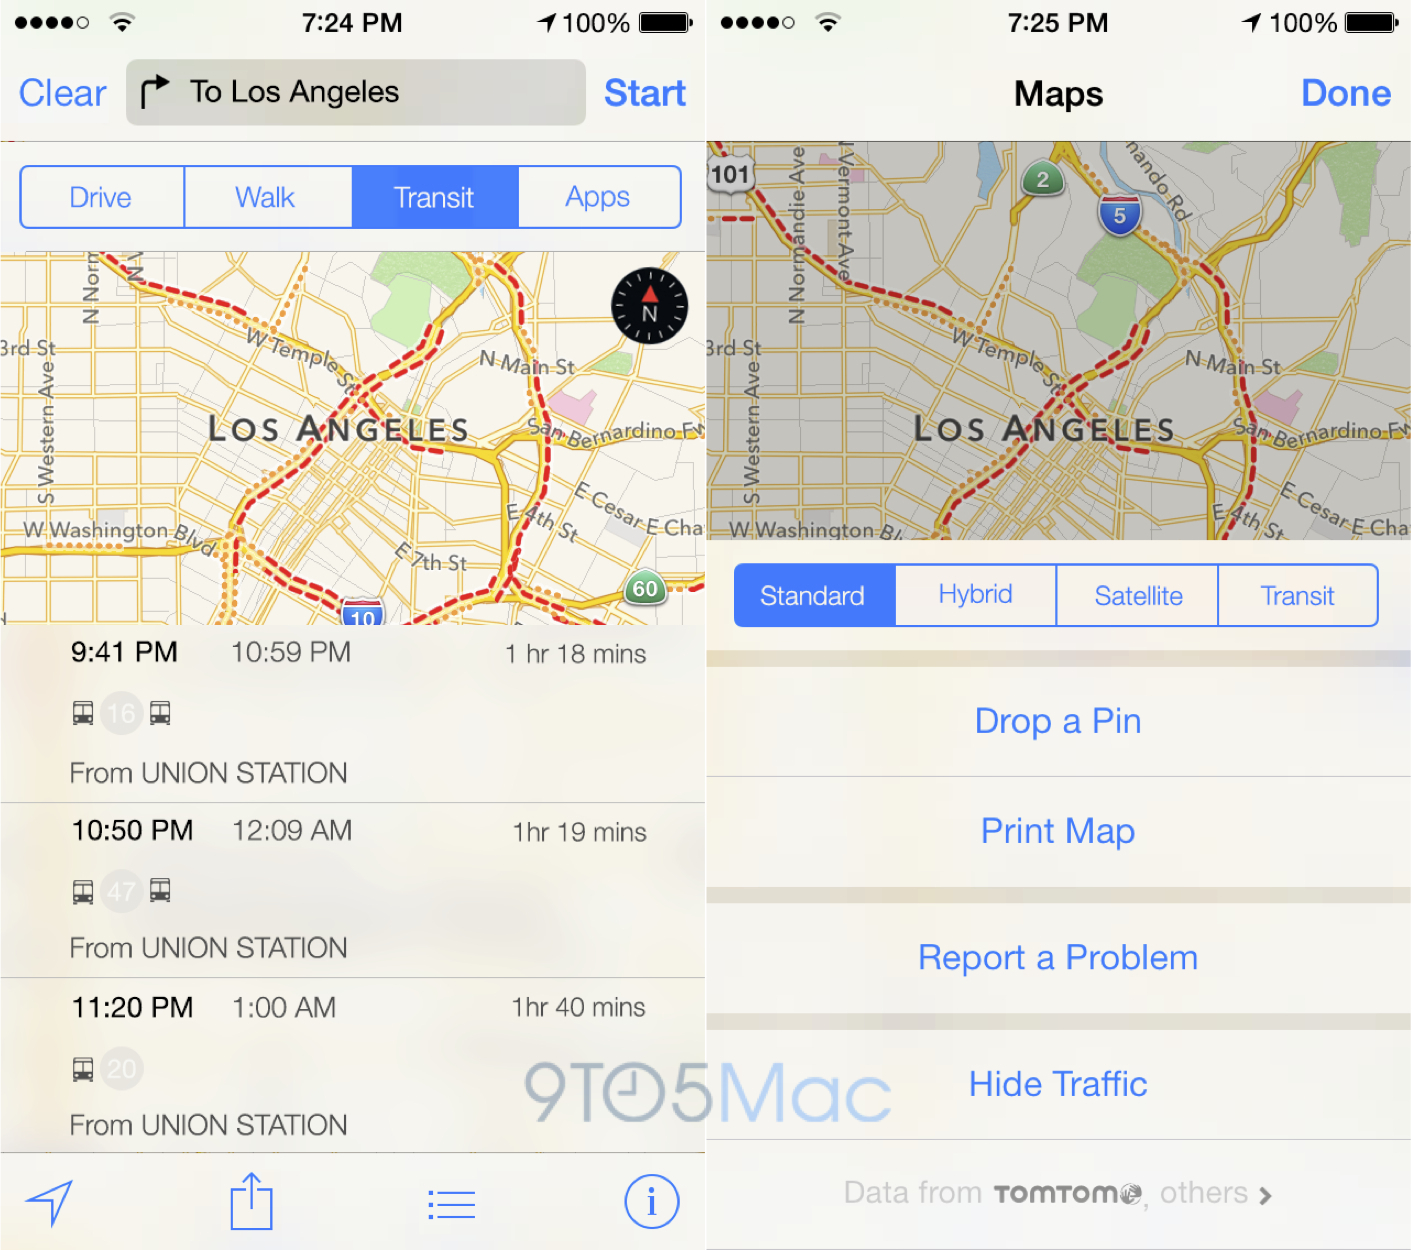 Apple Maps Transit 9to5Mac mockup